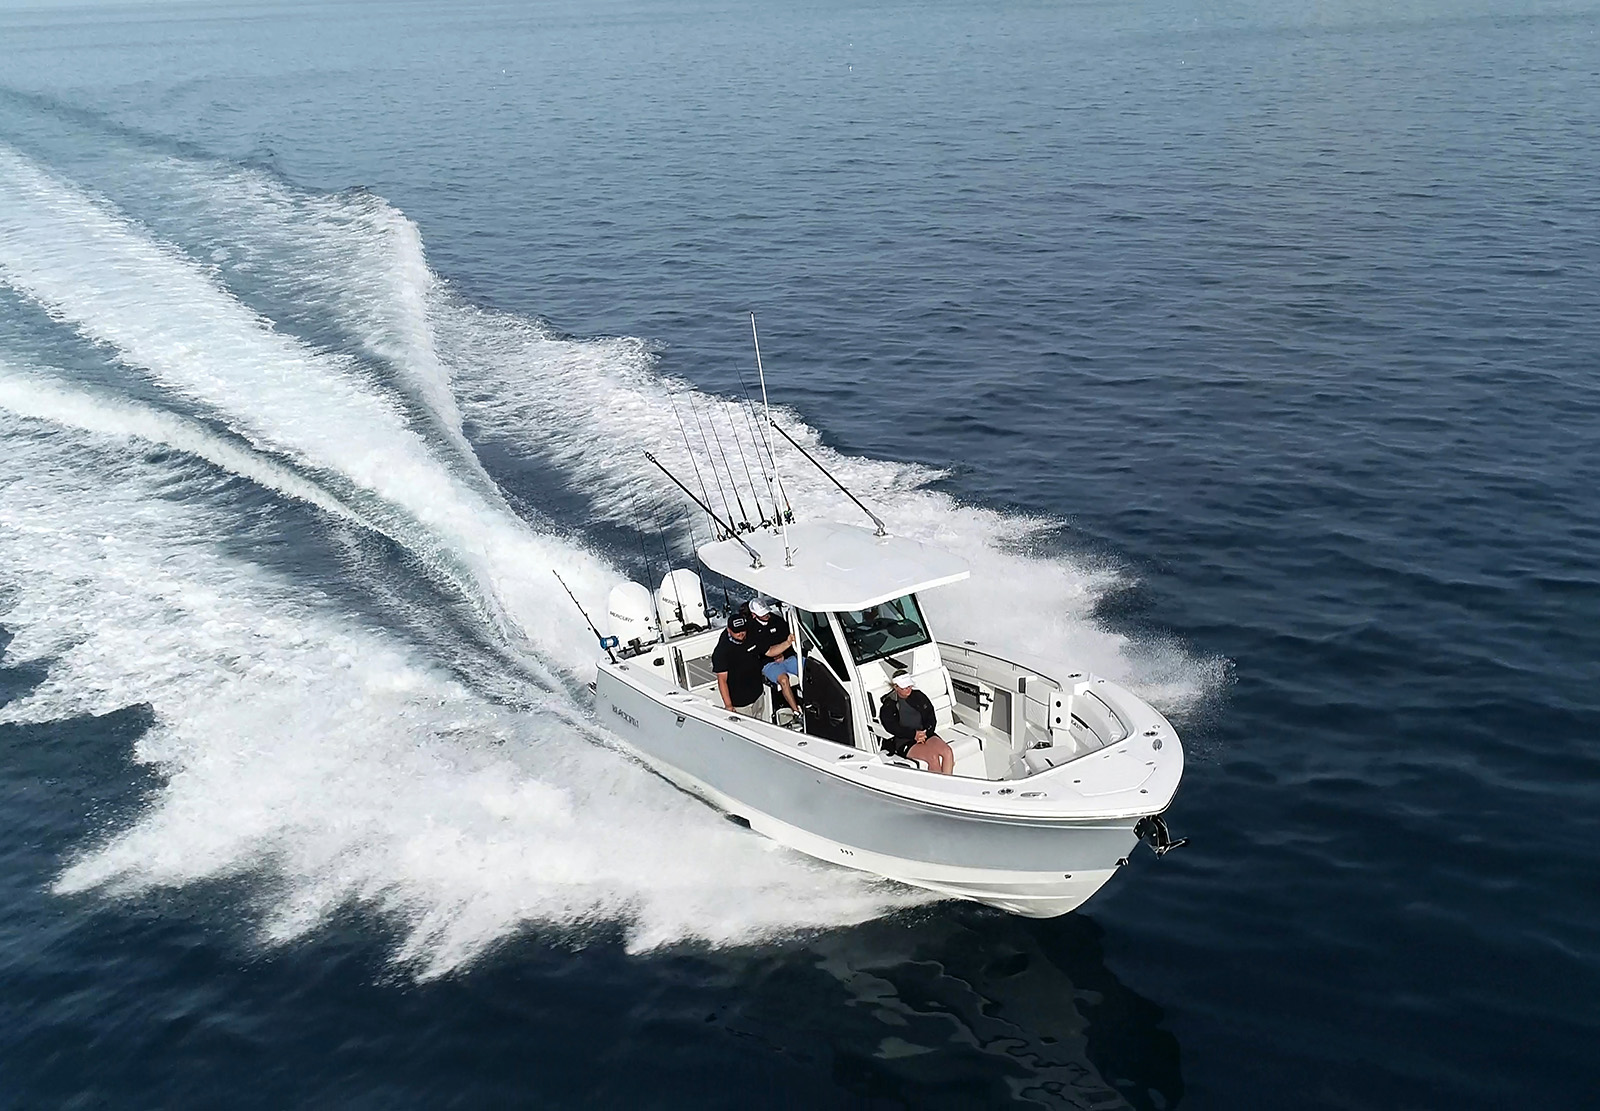 A day of fishing aboard the Blackfin 302CC